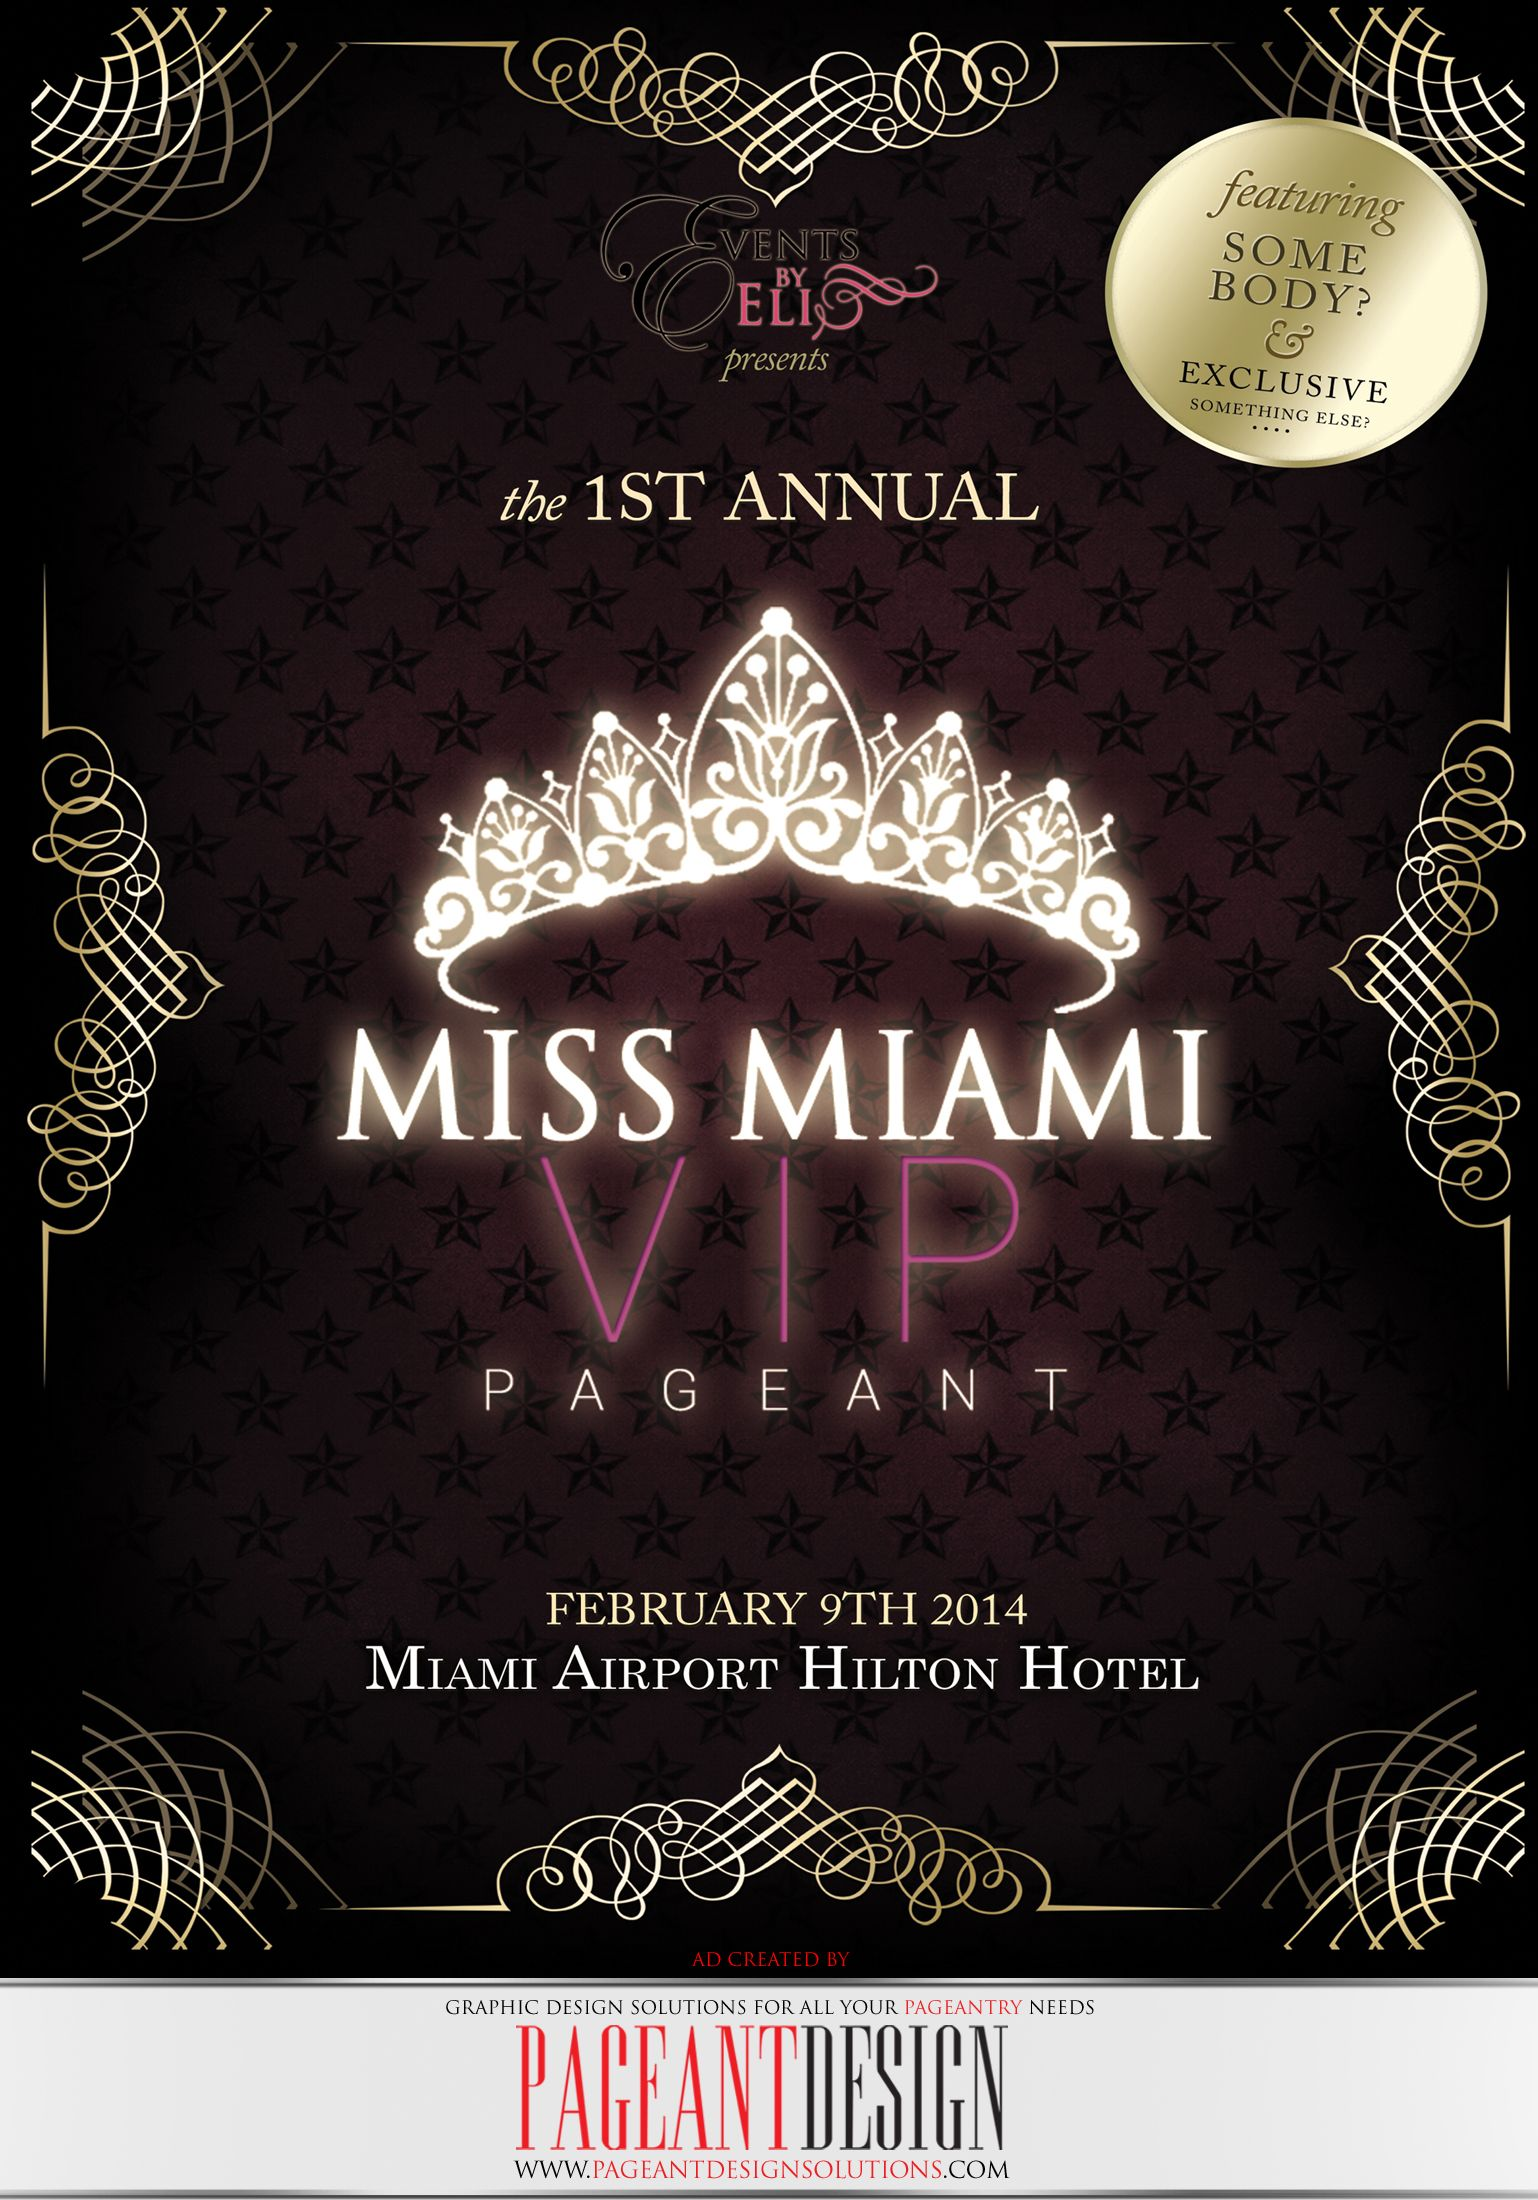 MISS MIAMI VIP PROGRAM BOOK COVER | We offer graphic design solutions for all your pageantry needs! | Pageant Ads / Pageant Program Books / Websites / Pageant Promo Flyers & Items + more! | for samples and prices check out: http://www.pageantdesignsolutions.com/